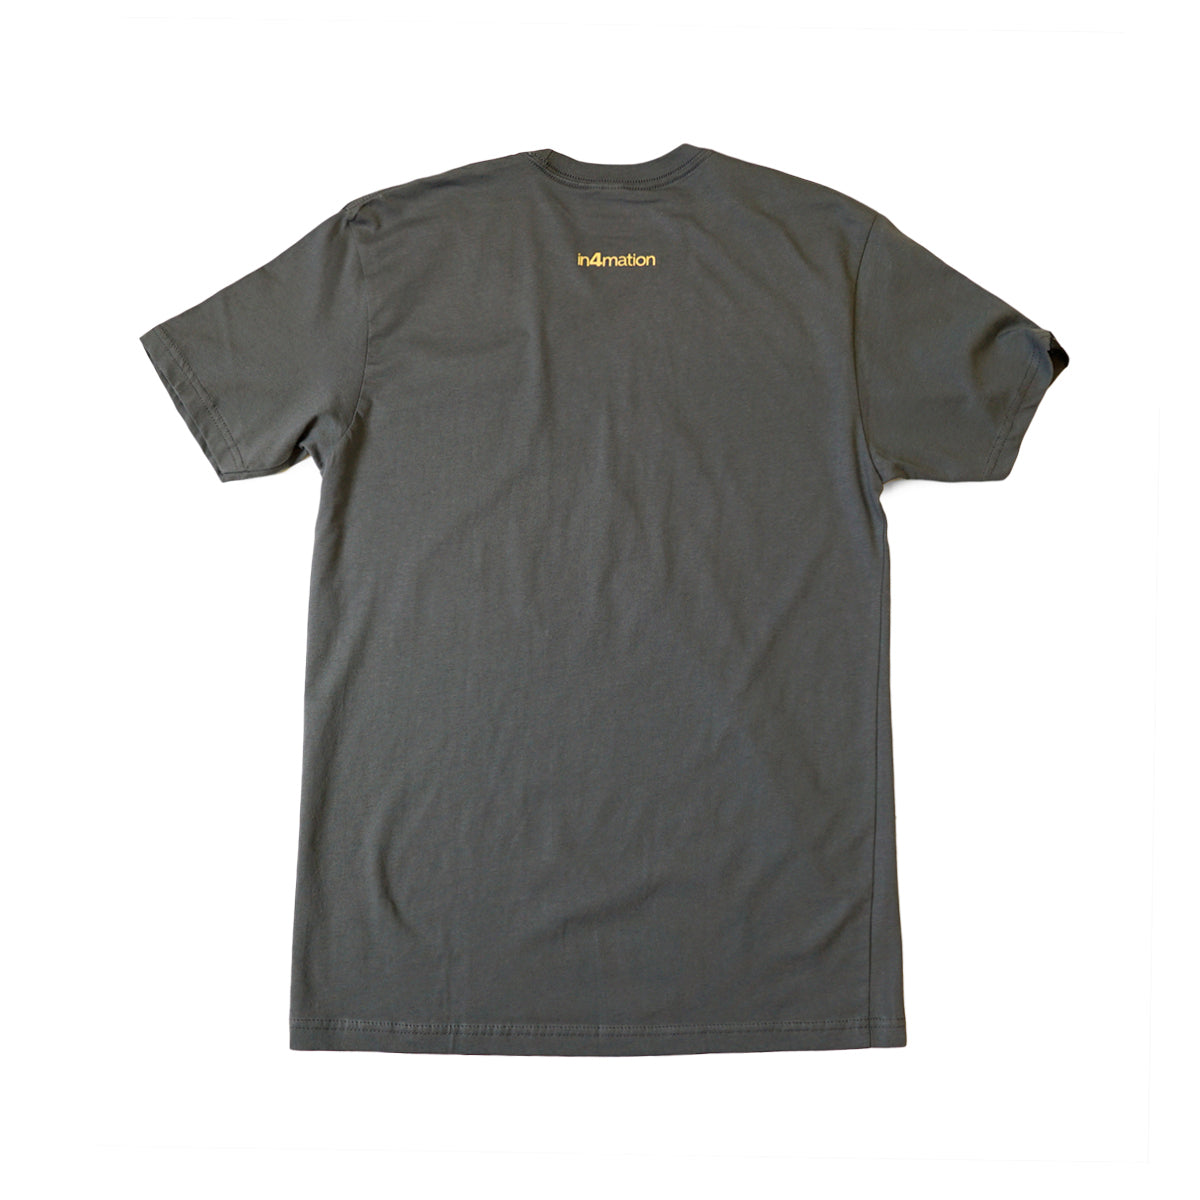 IN4MATION - HI SCRIPT TEE (HEAVY METAL/A'S GOLD)